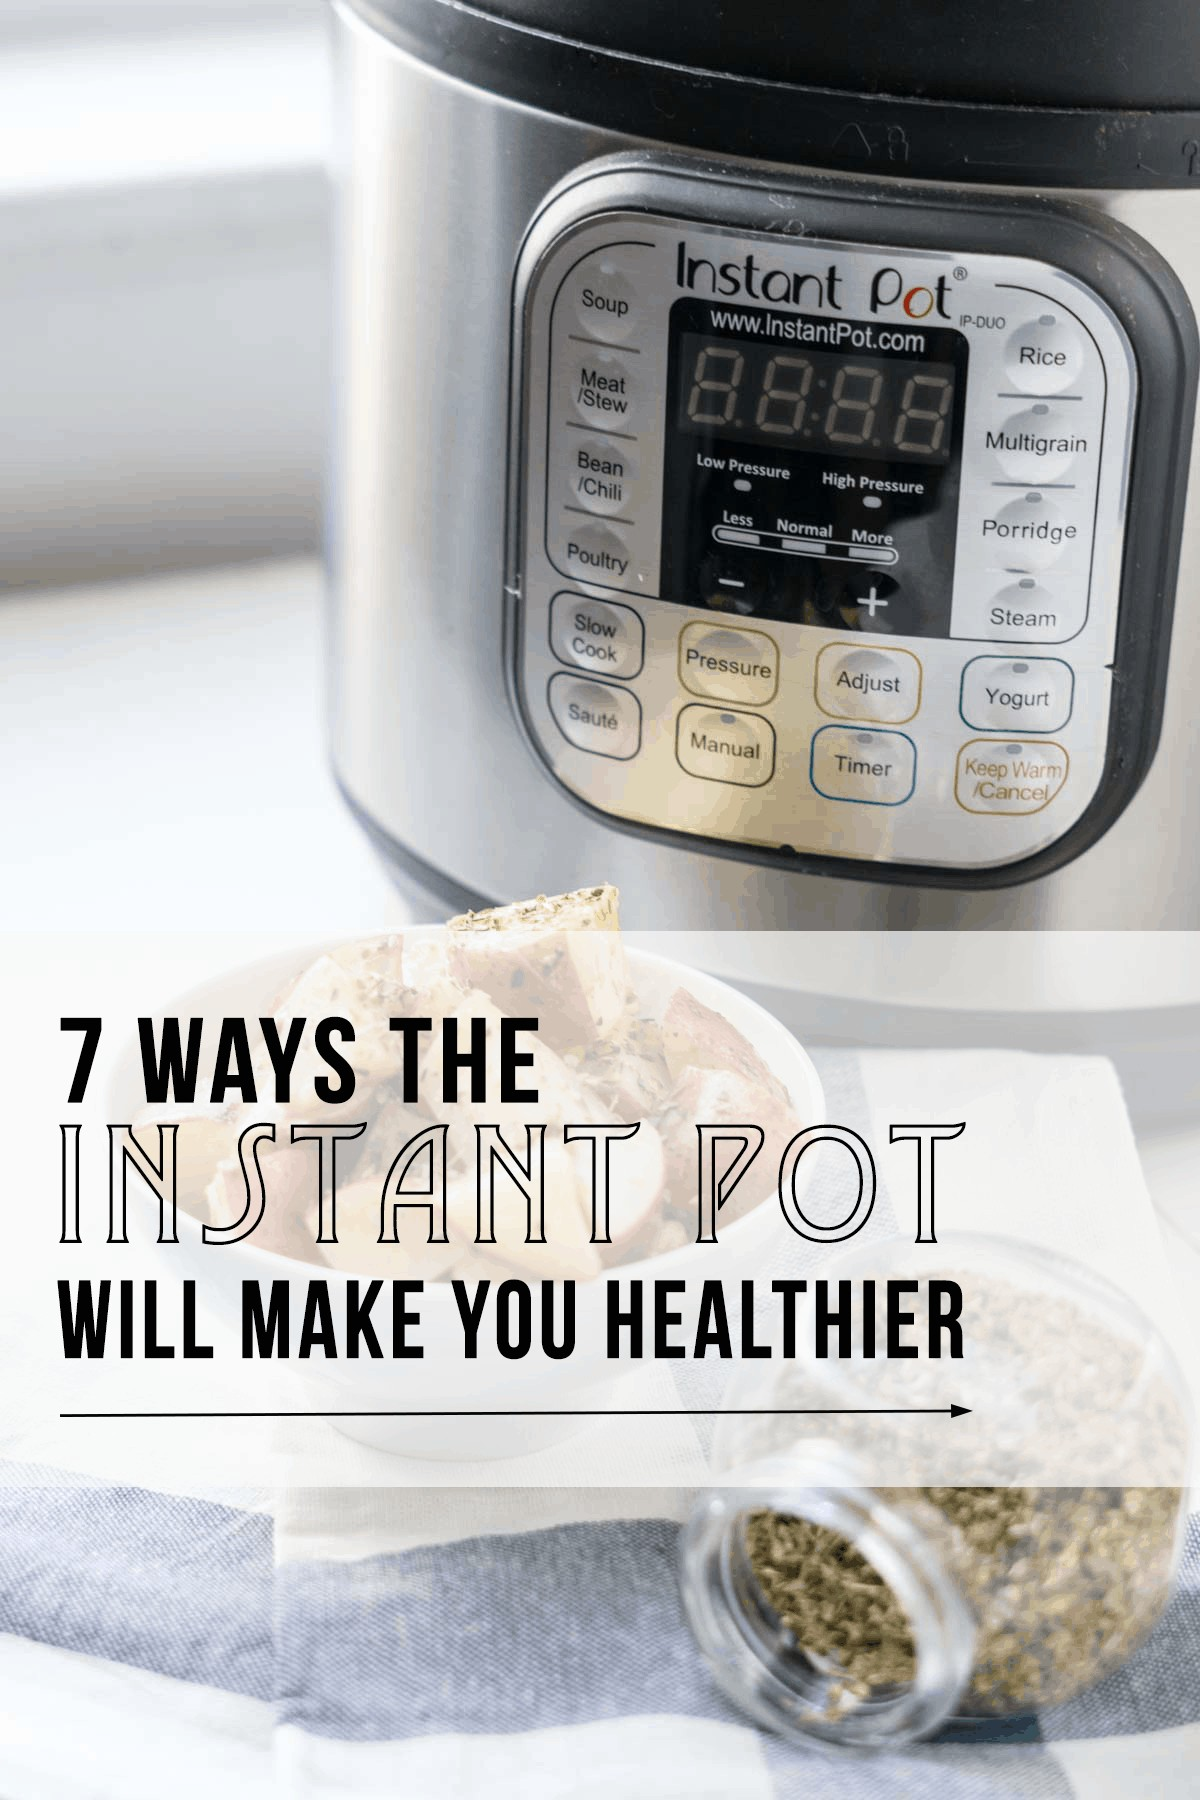 7 Ways the Instant Pot will make you Healthier